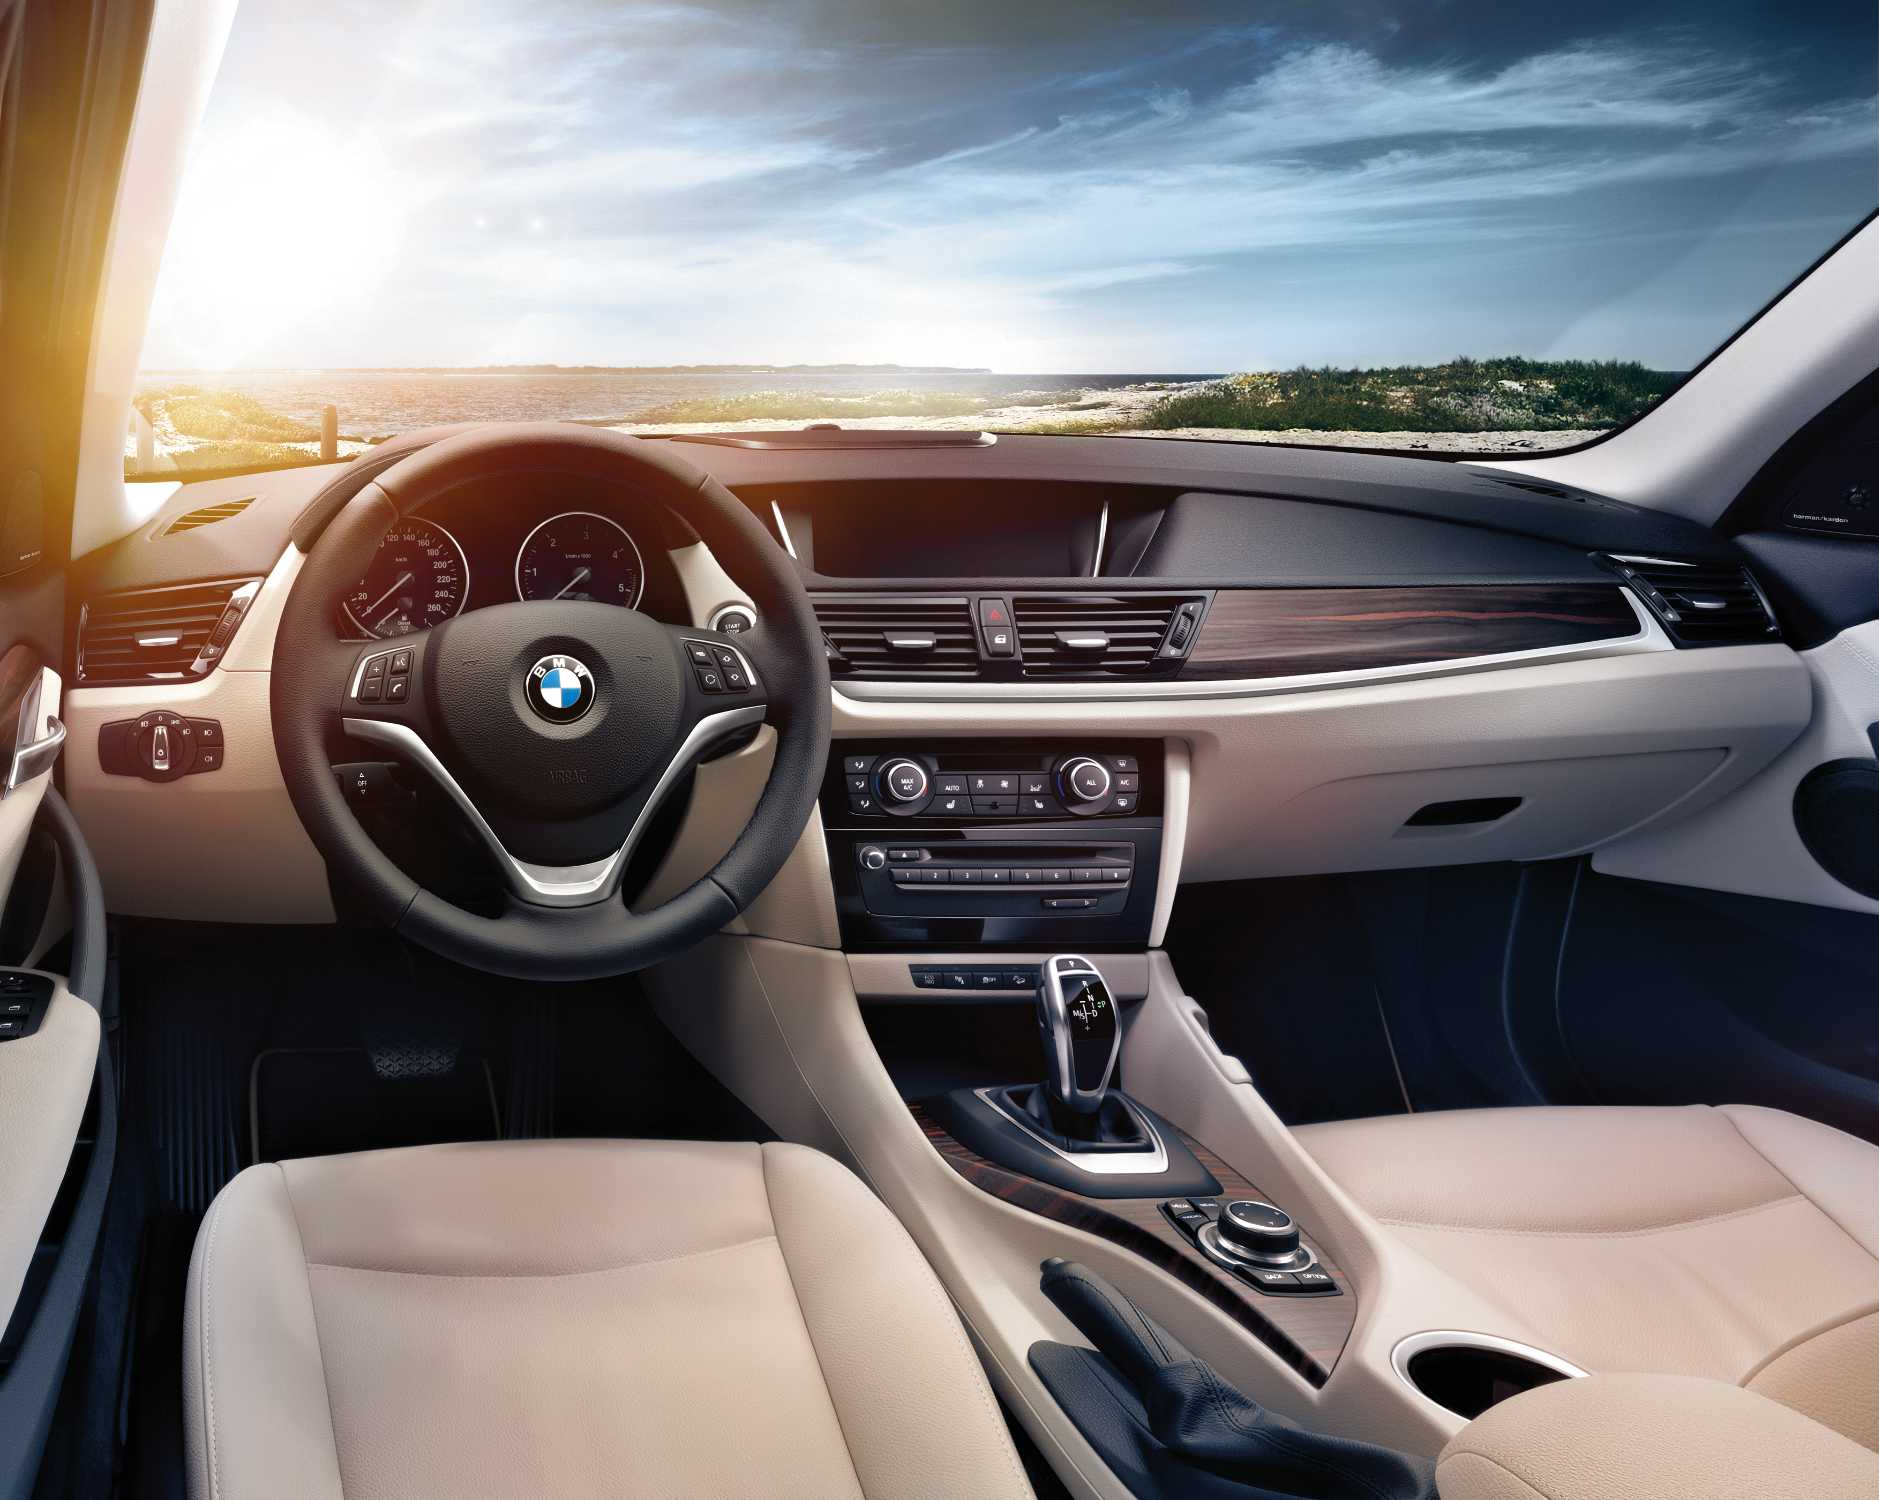 Bmw X1 Xdrive25d Interior Nevada Leather Oyster With